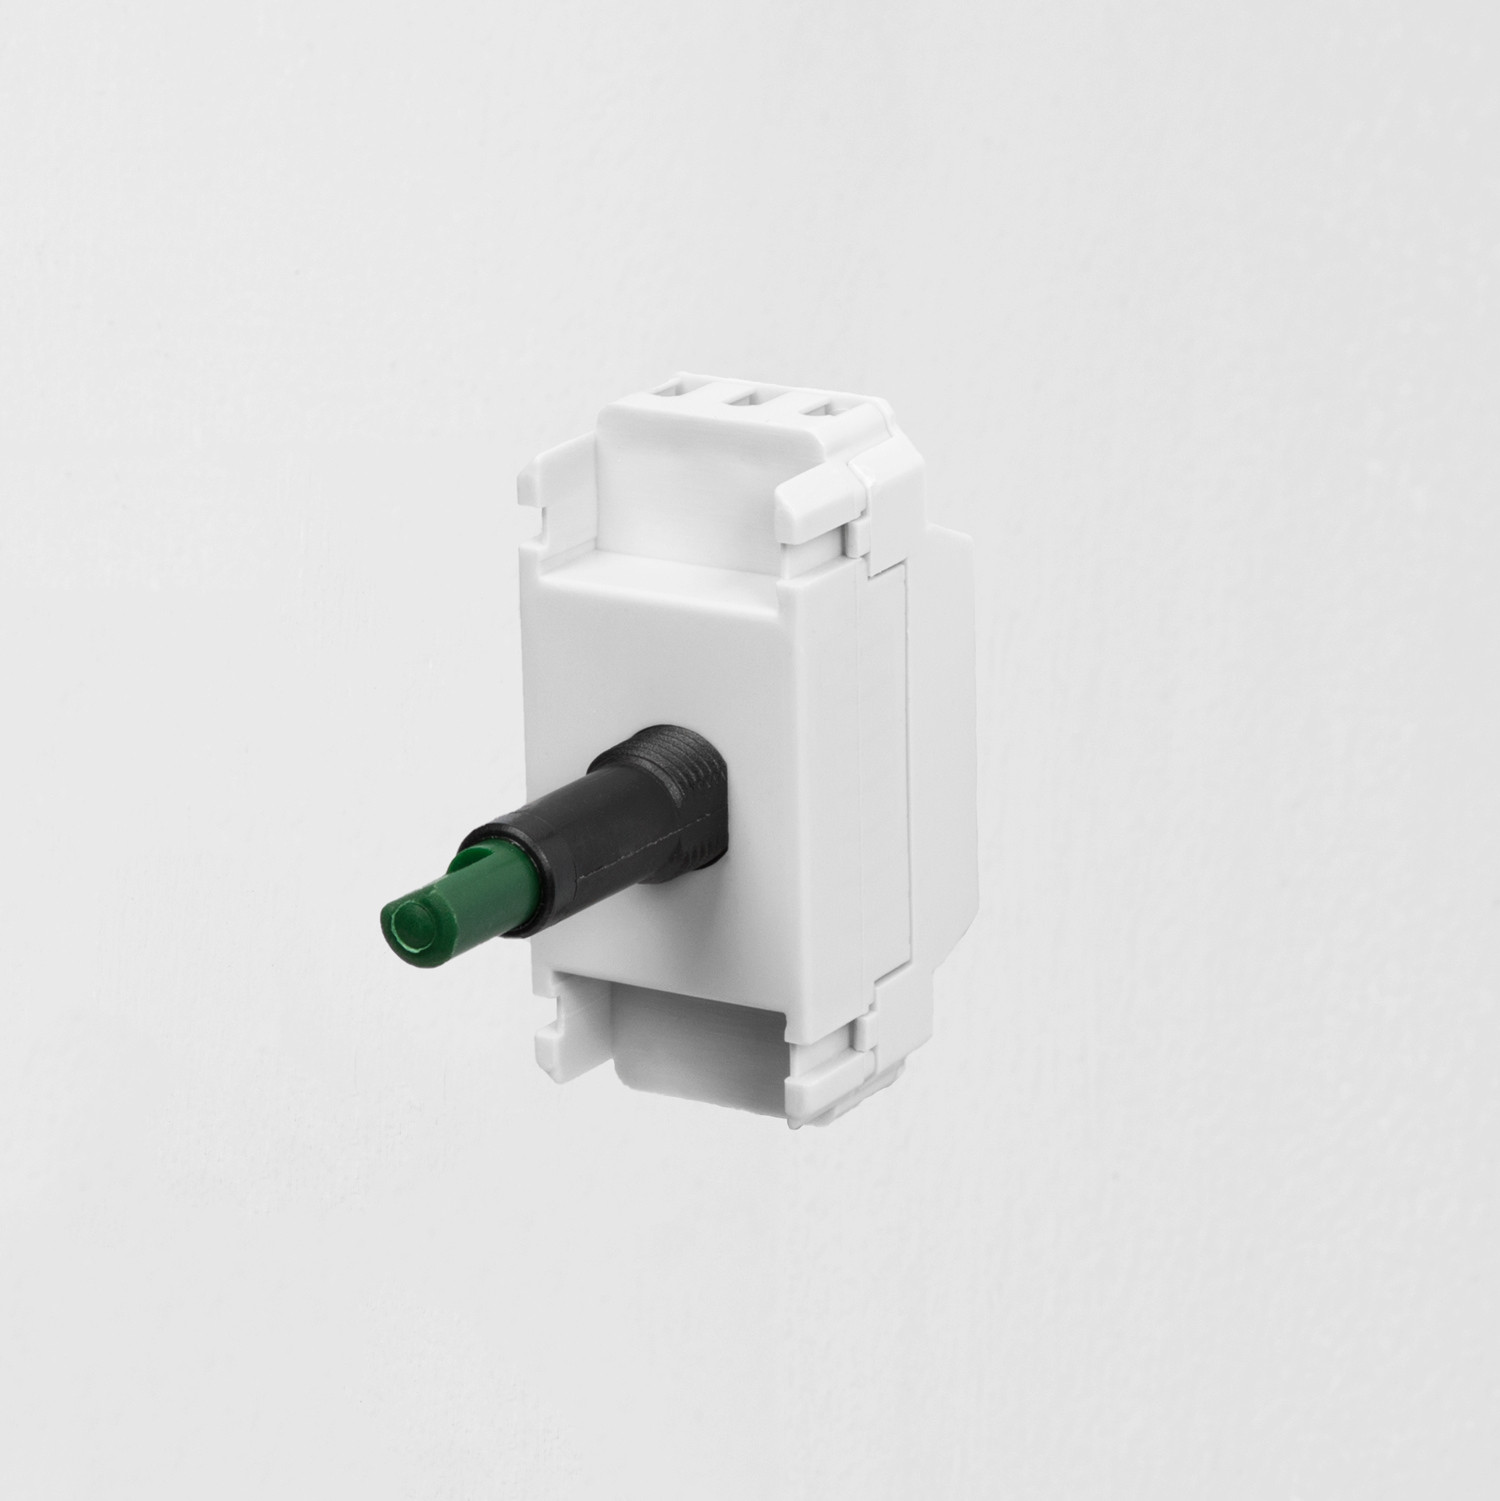 Dimmer Modules Intermediate Push On Off Switch 3 Way Adapter